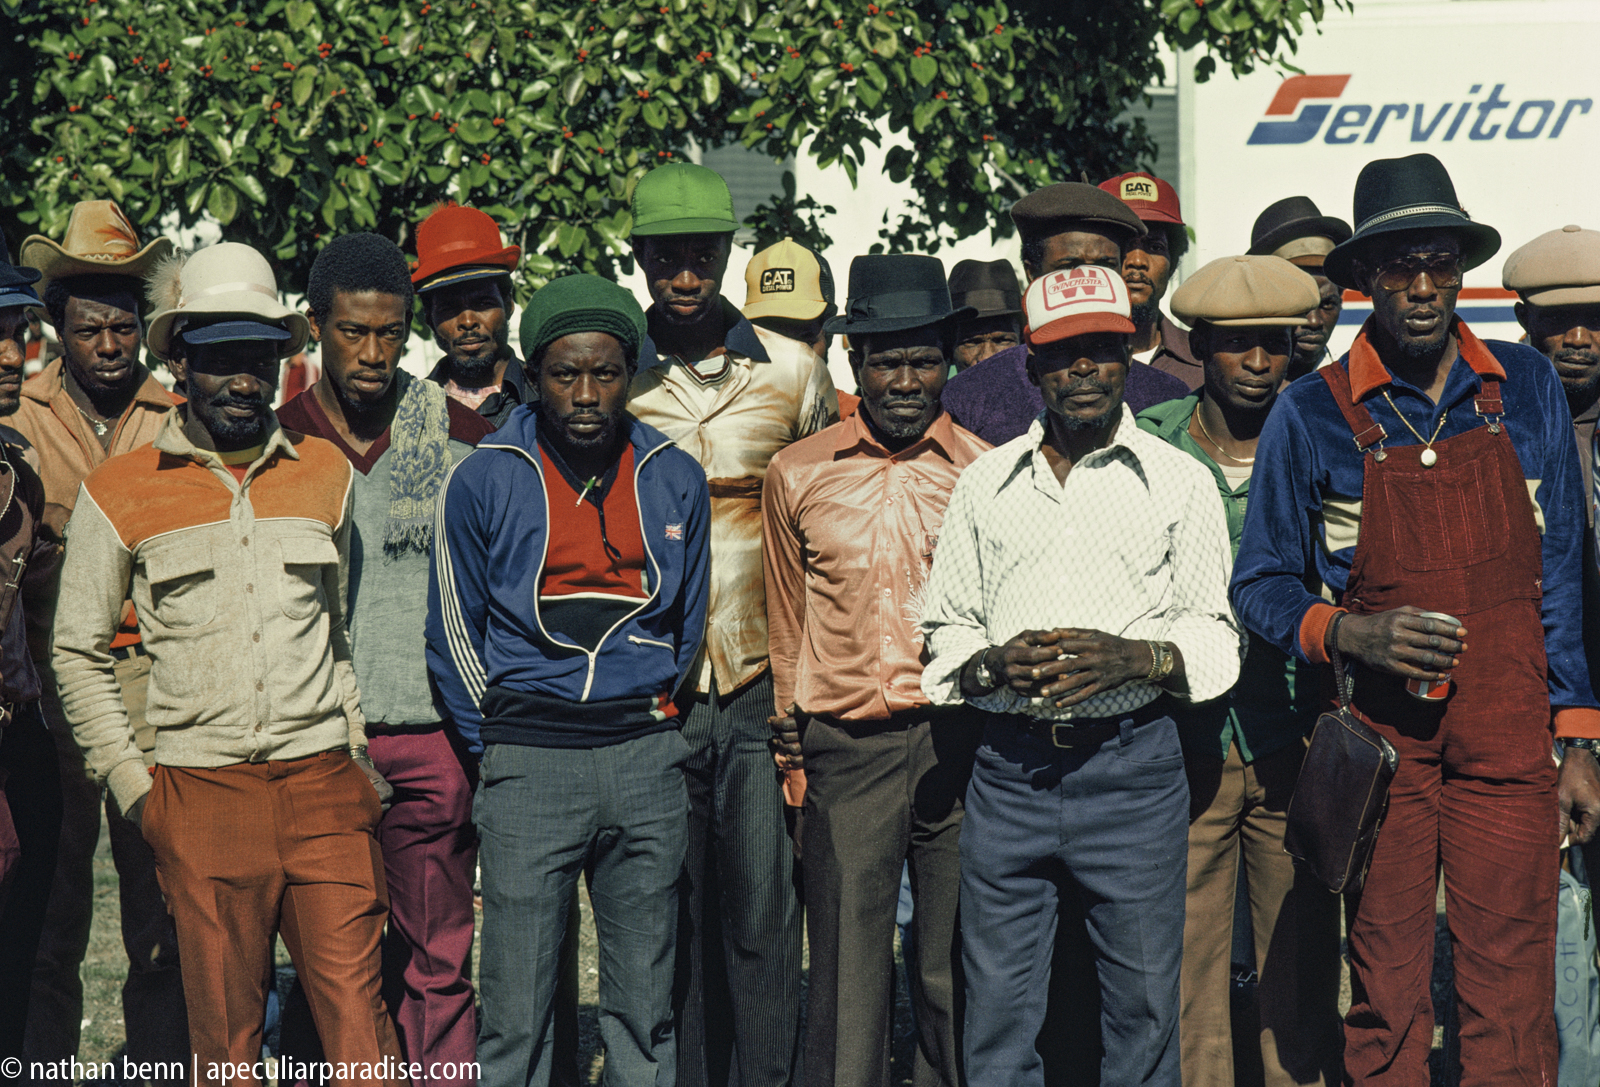 Next to Miami Intl' Airport at Meranda Company, mostly Jamaican seasonal workers await to be flown home after 3-6 months work as field laborers here, mostly cutting sugar cane. 12000 - 13,000 come through here annually and their revenue is the 3rd greatest producer of foreign trade in Jamaica. Program started in WWII.